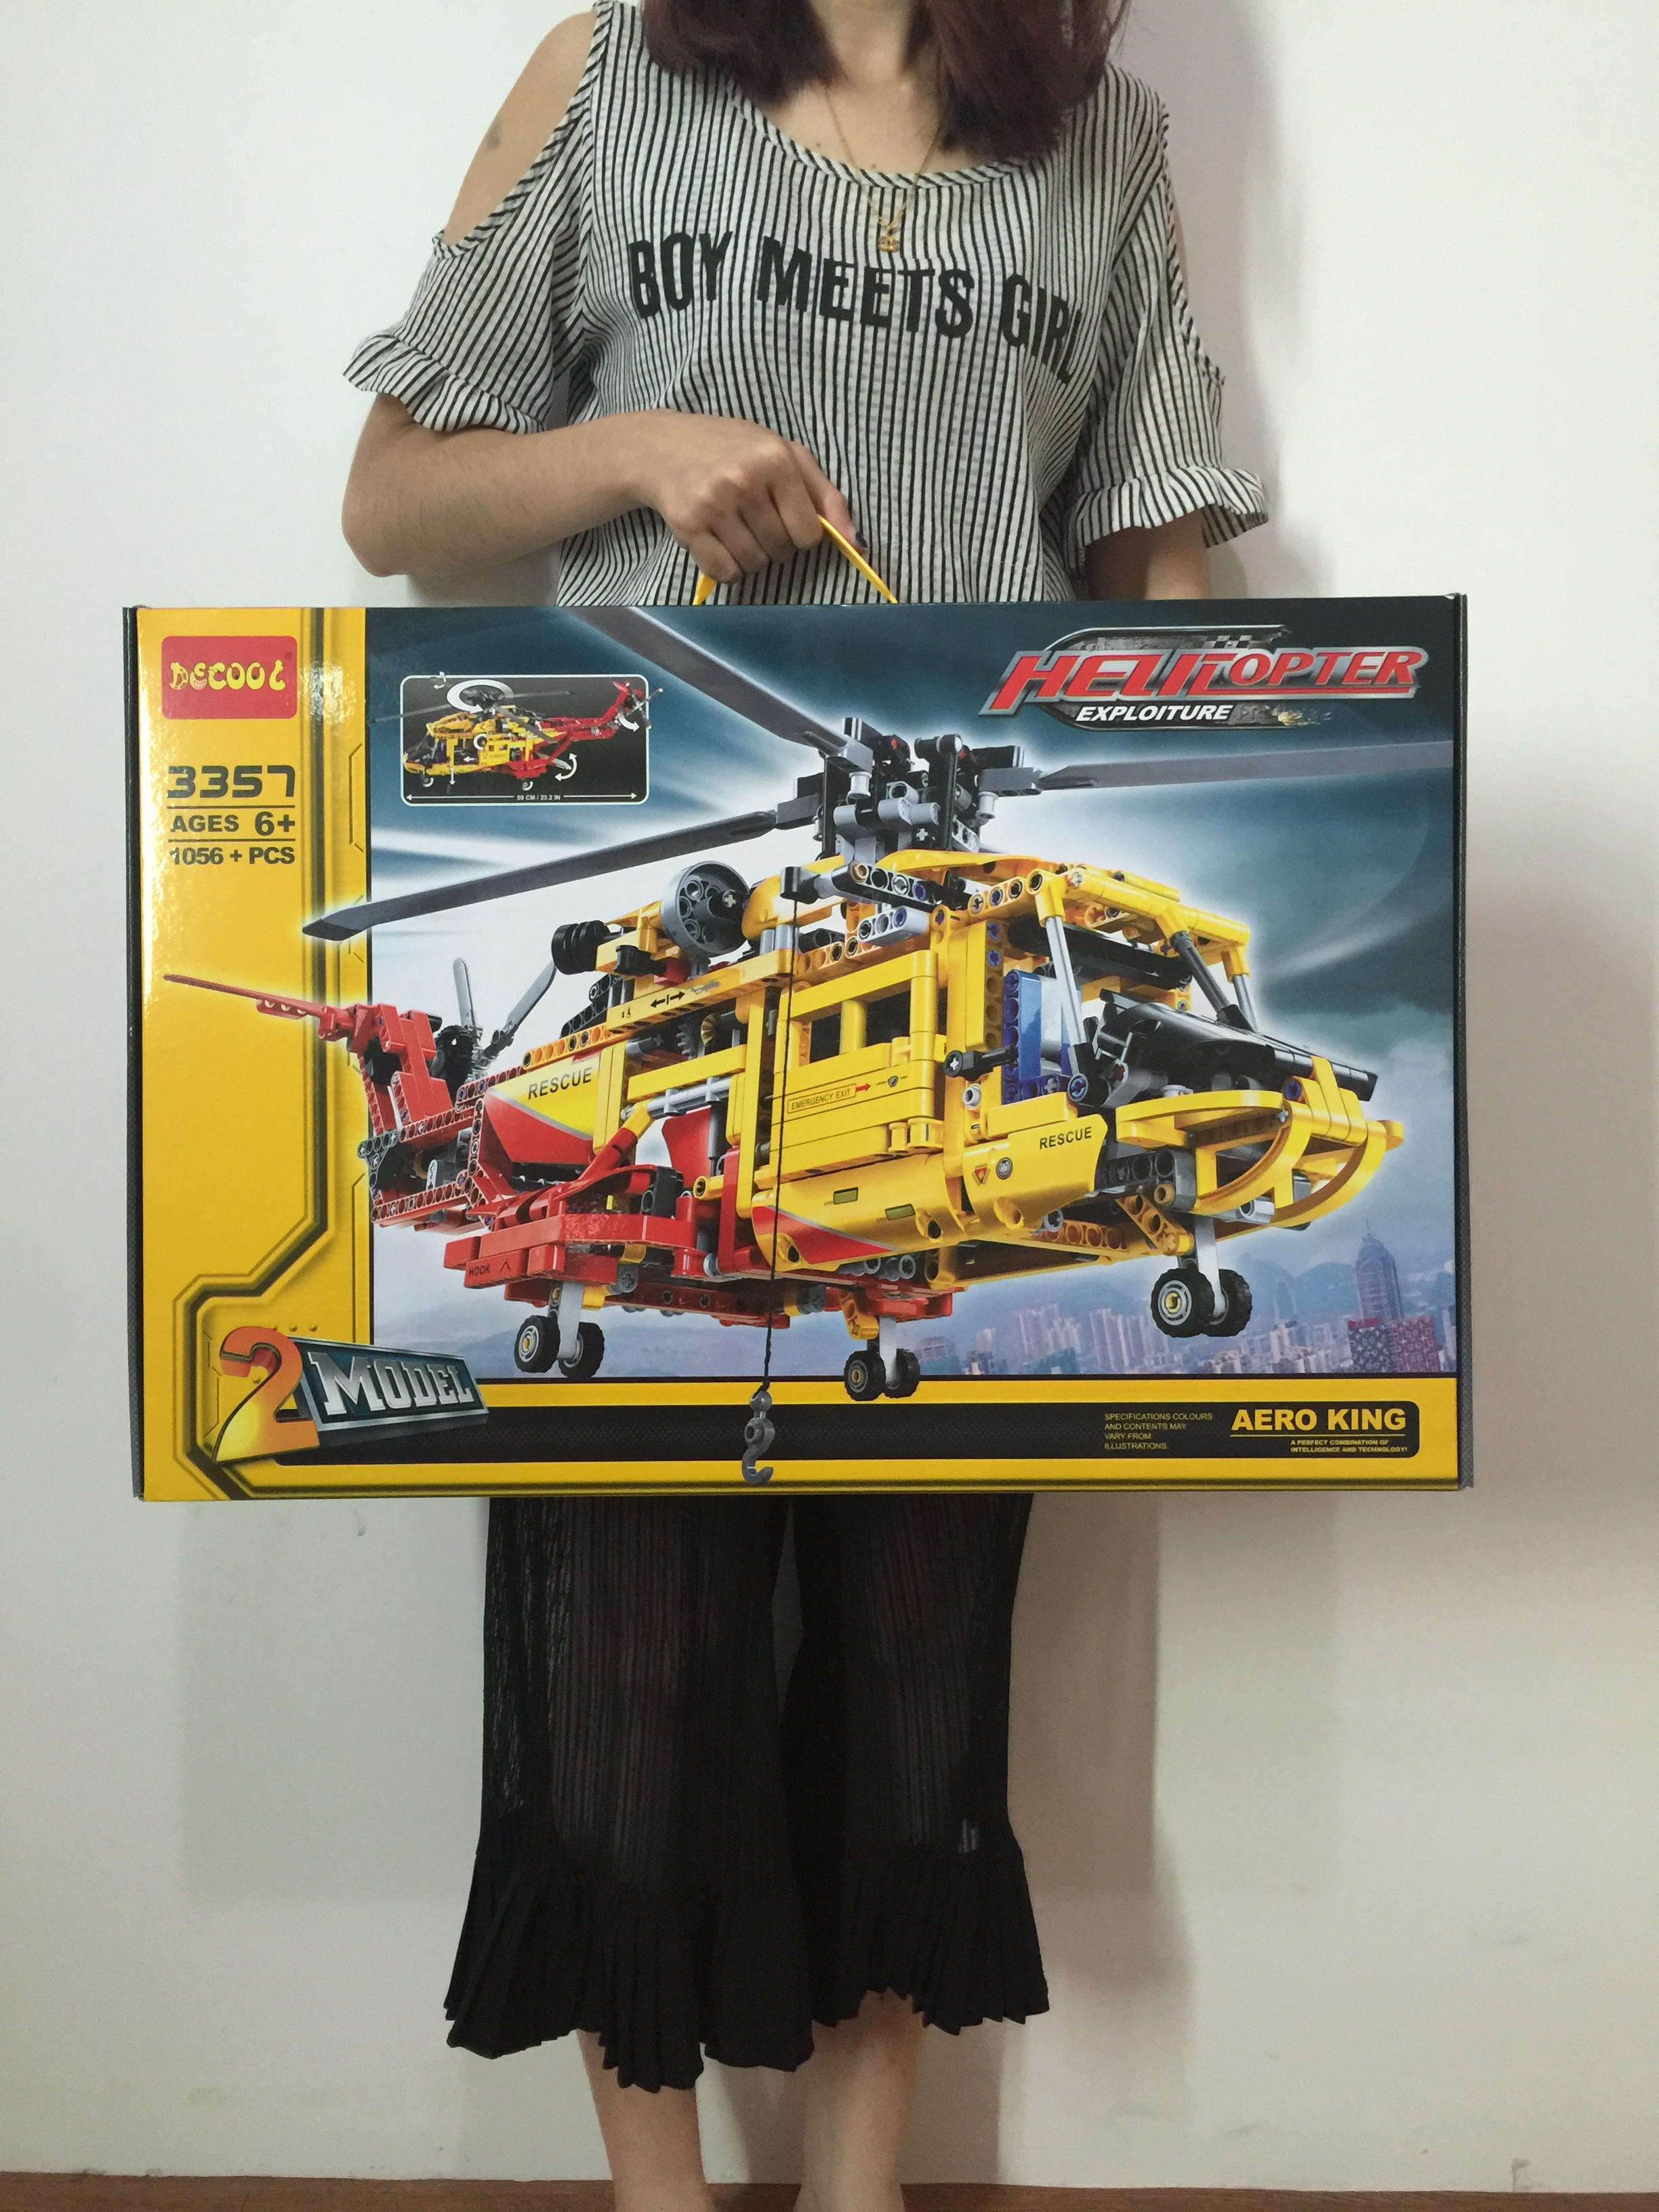 DECOOL TECHNIC 3357 CITY Rescue Helicopter 2IN1 Aircraft Plane Model Building Blocks Bricks Toys For Children Gifts Legoly 9396